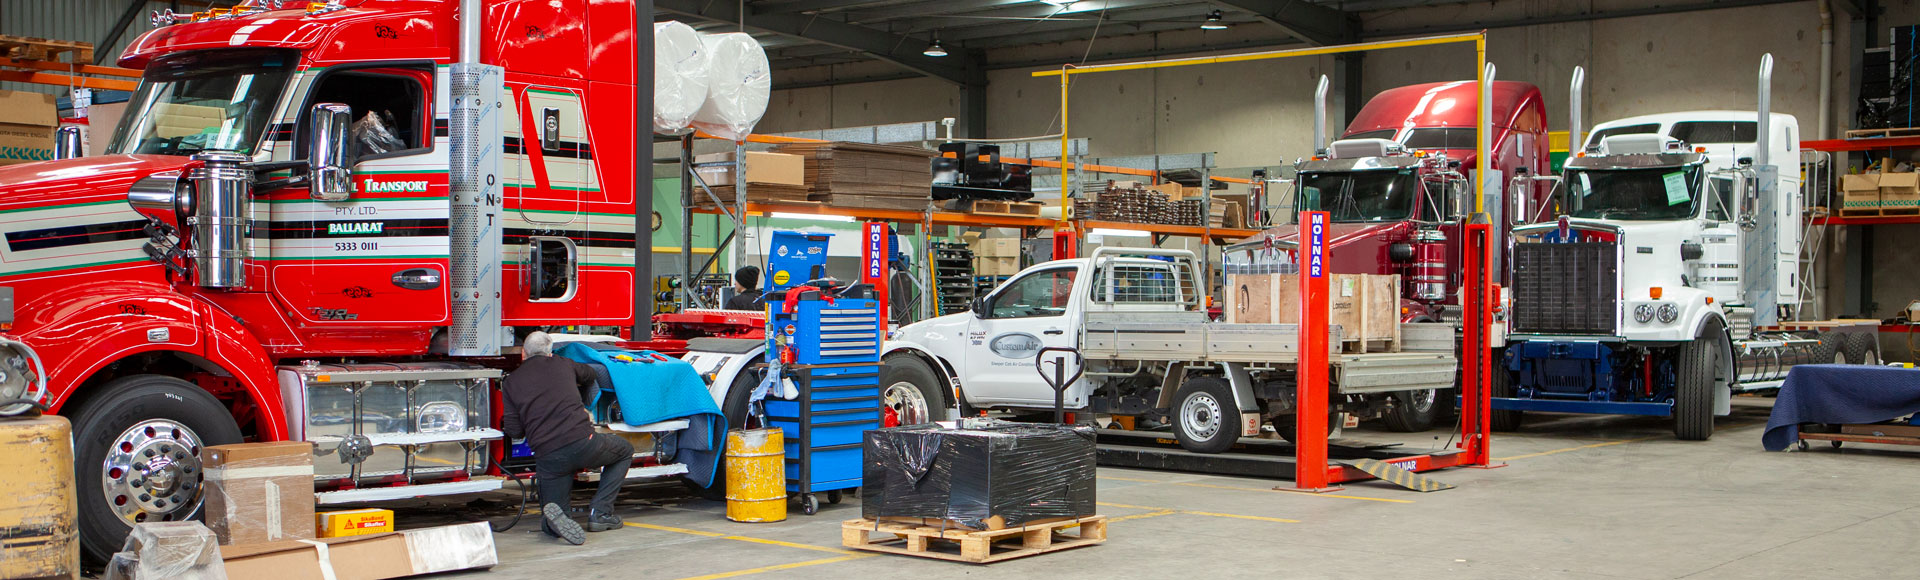 CustomAir - World-Renowned Sleeper Cab Air Conditioning Experts